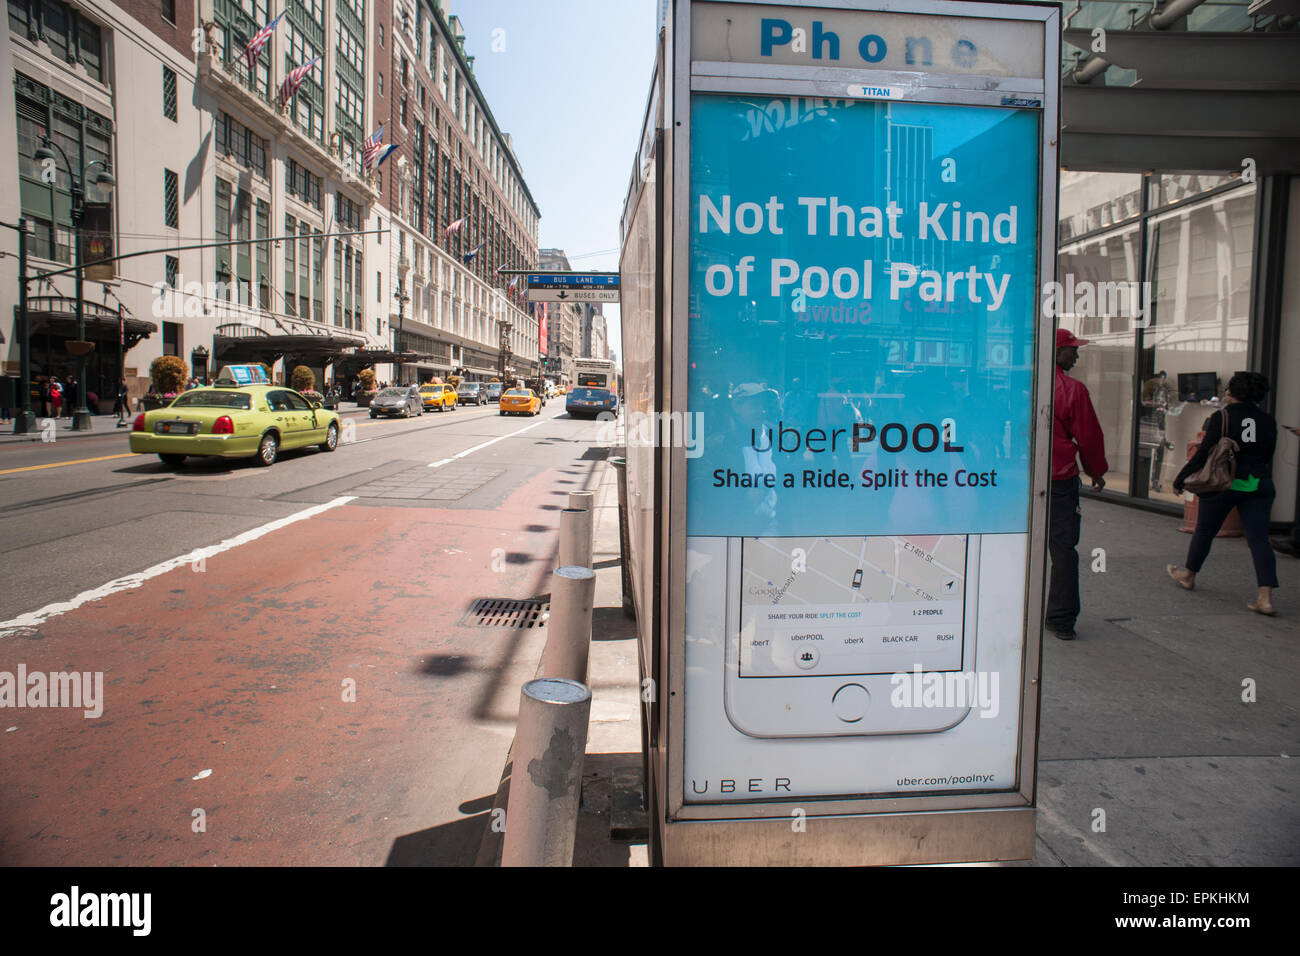 An advertisement on a telephone kiosk for UberPool ridesharing in Midtown in New York on Thursday, May 14, 2015. - Stock Image